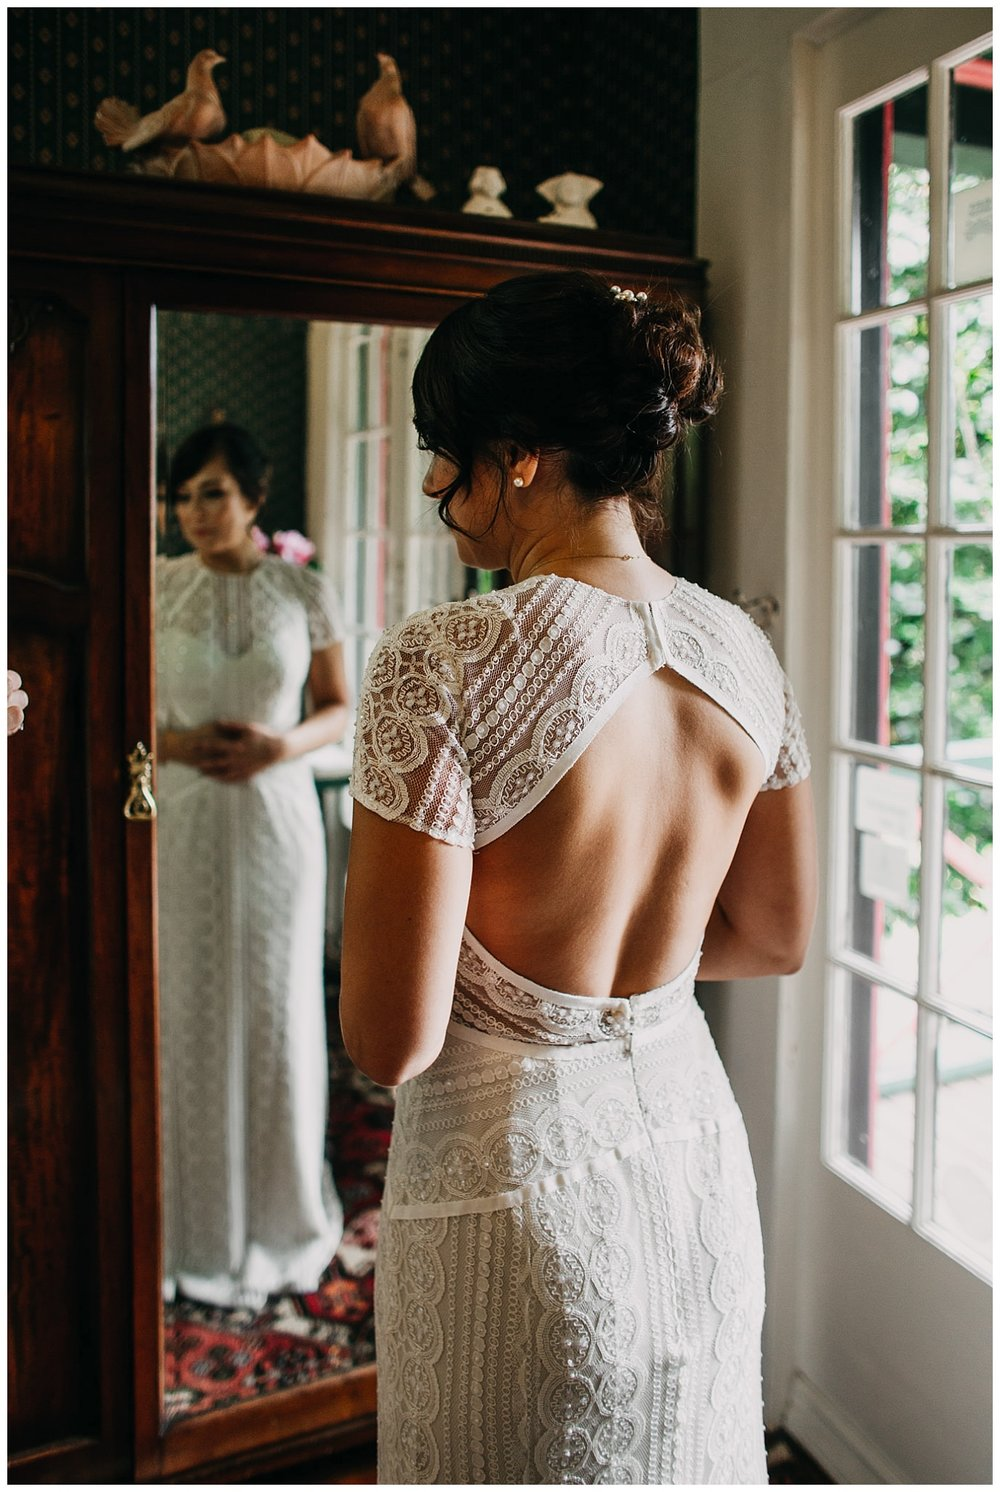 WTOO by Watters wedding dress at ubc boathouse vancouver wedding